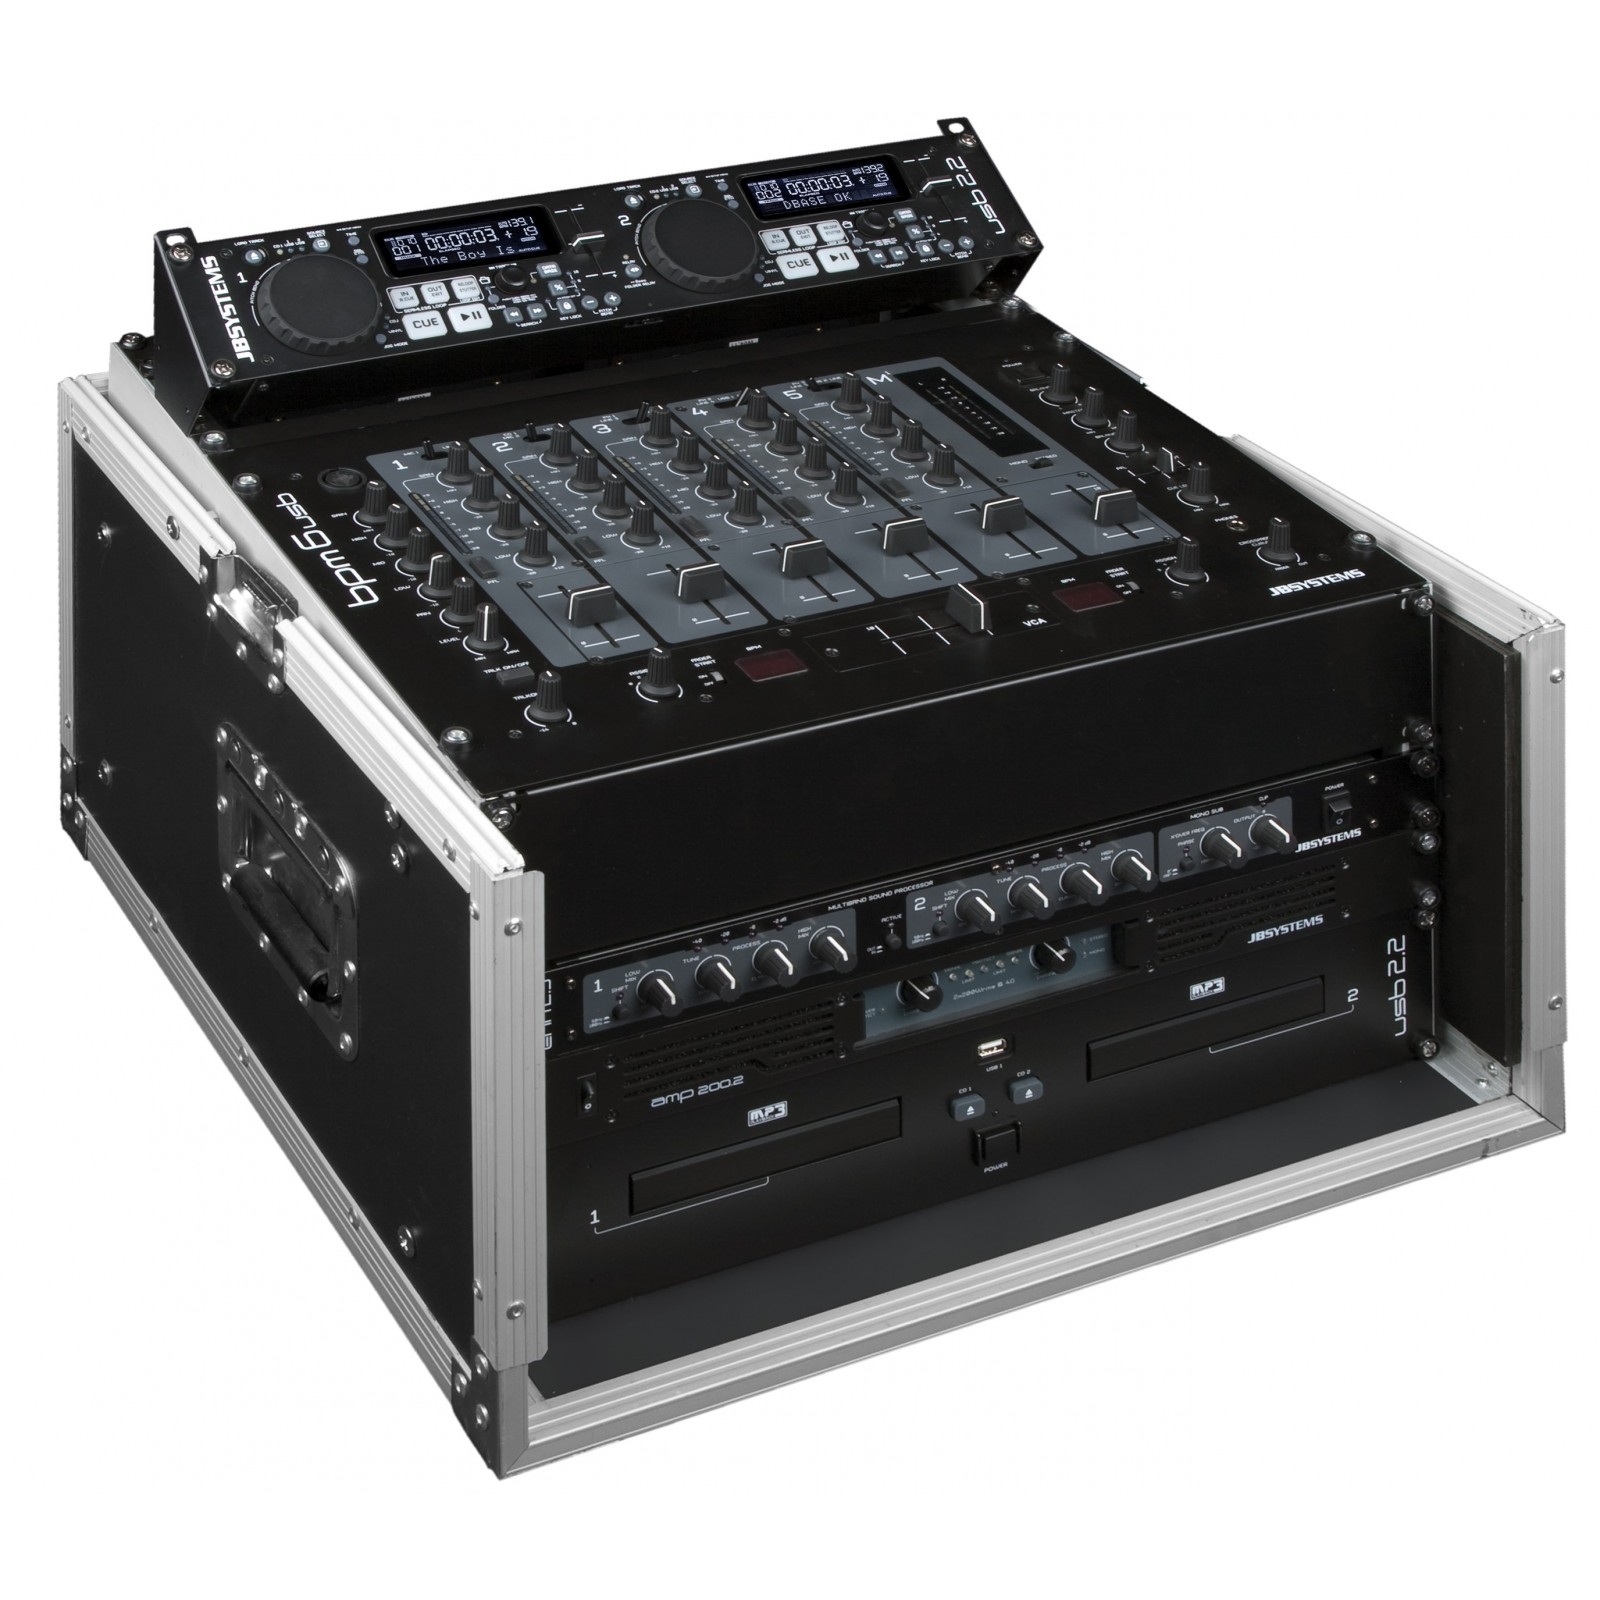 Jb Lighting Varyled A7 Zoom Jb Systems Dj Case 10 6u